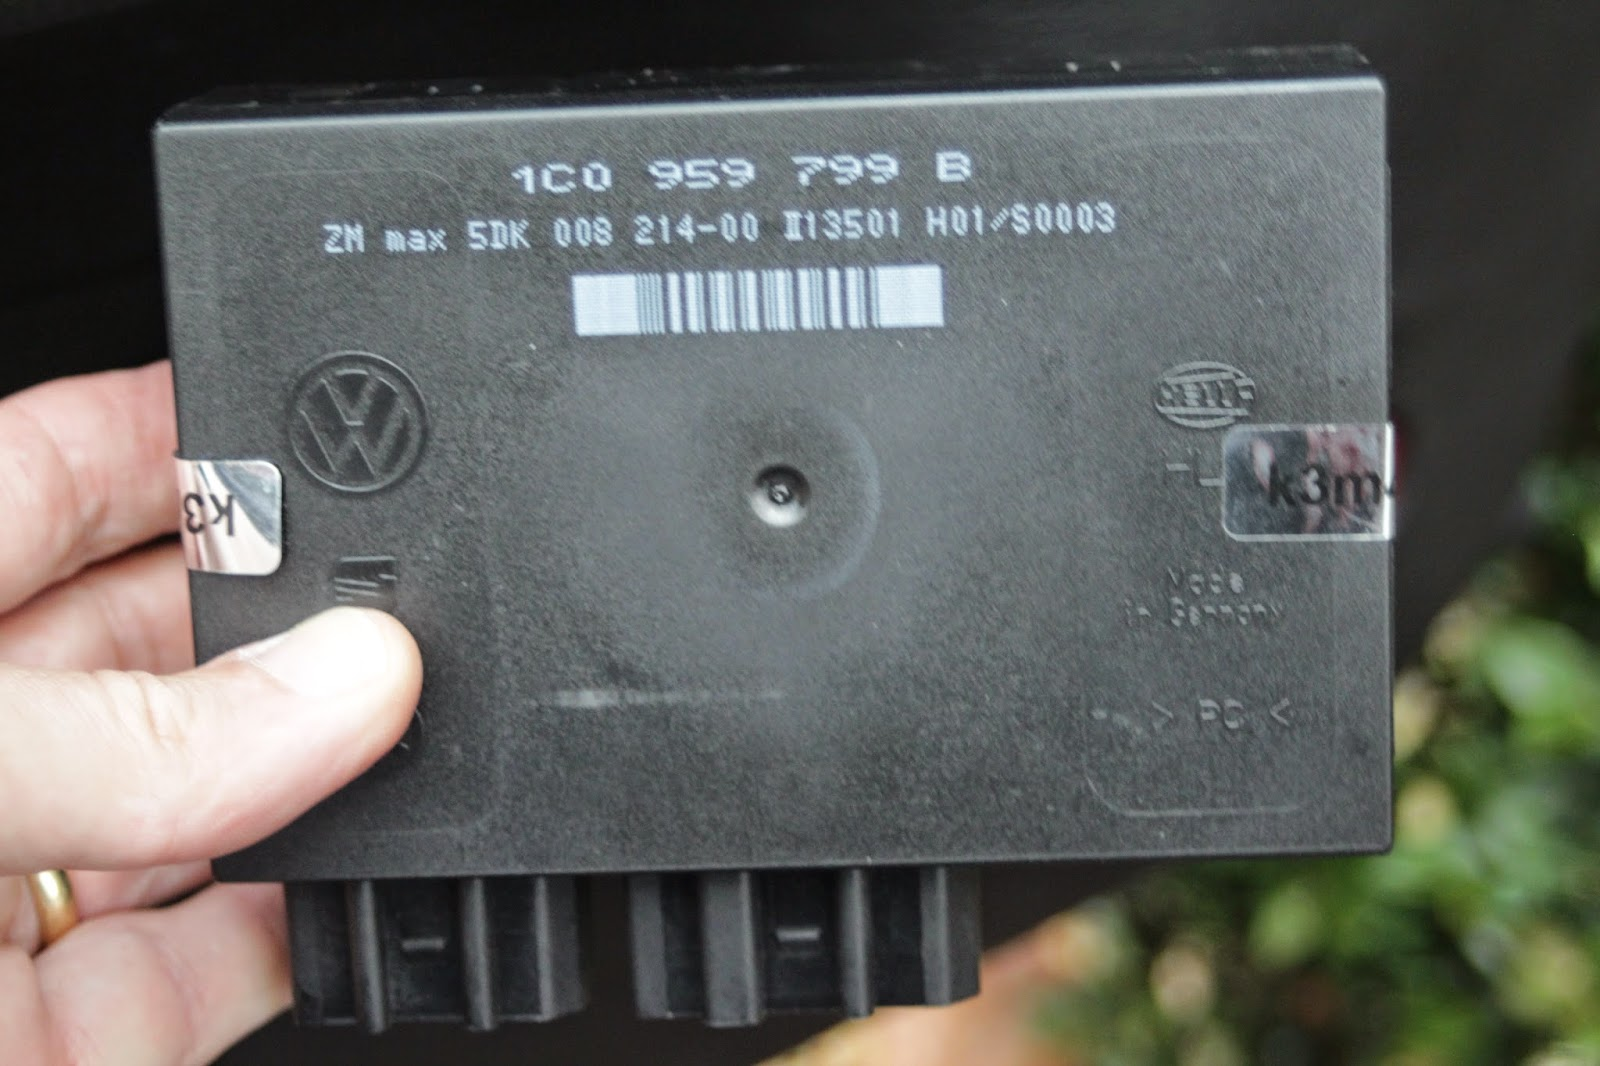 Photo of a CCM module from a VW Golf - Part 1C0 959 799B